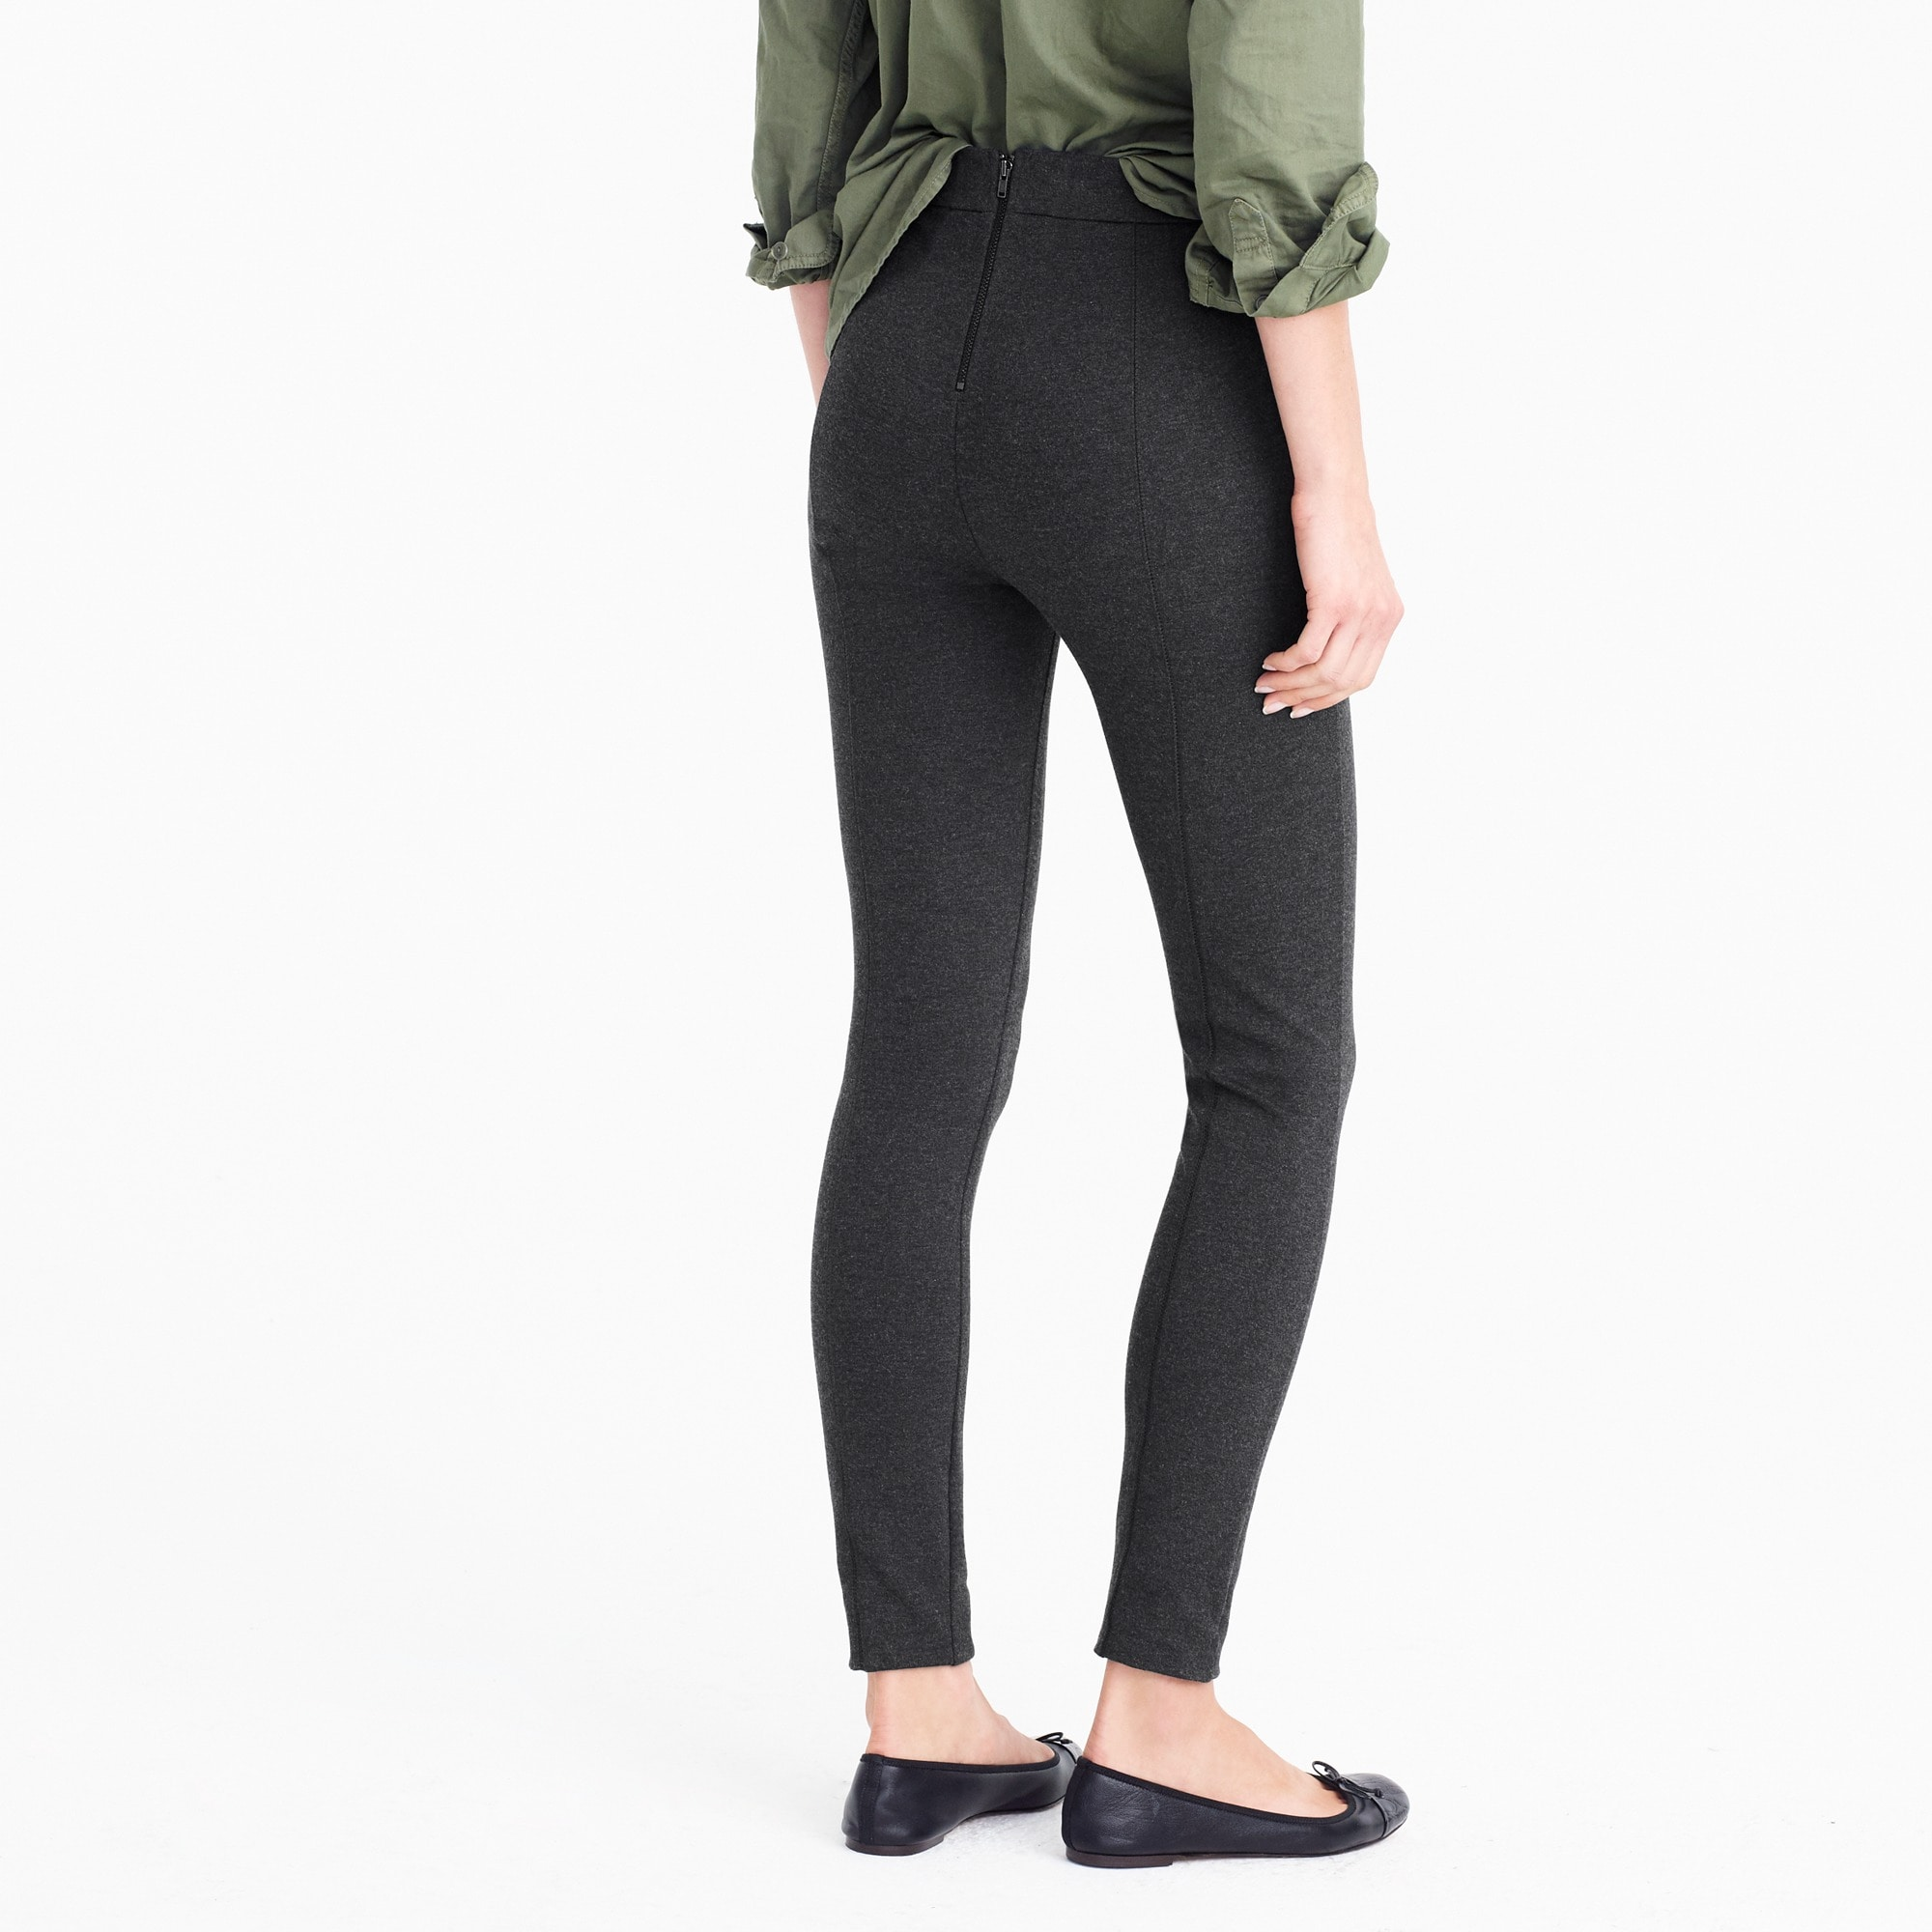 Petite Any day pant in stretch ponte